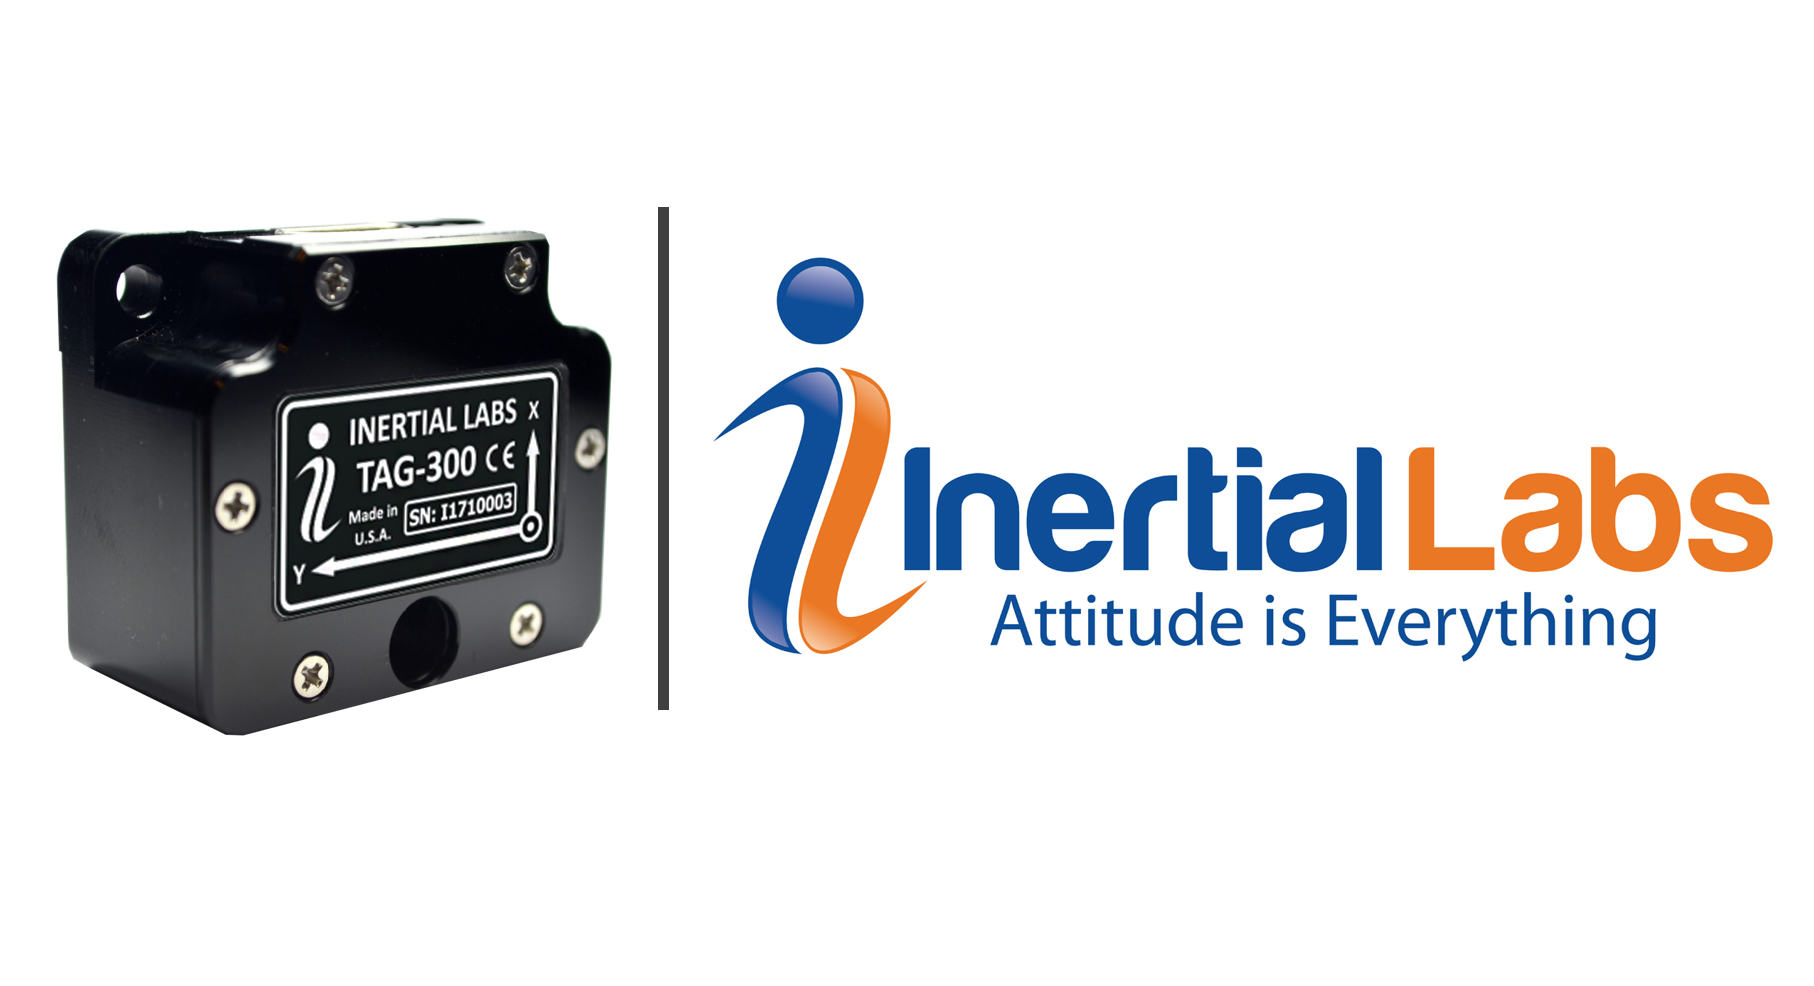 TAG-300 Release by Inertial Labs